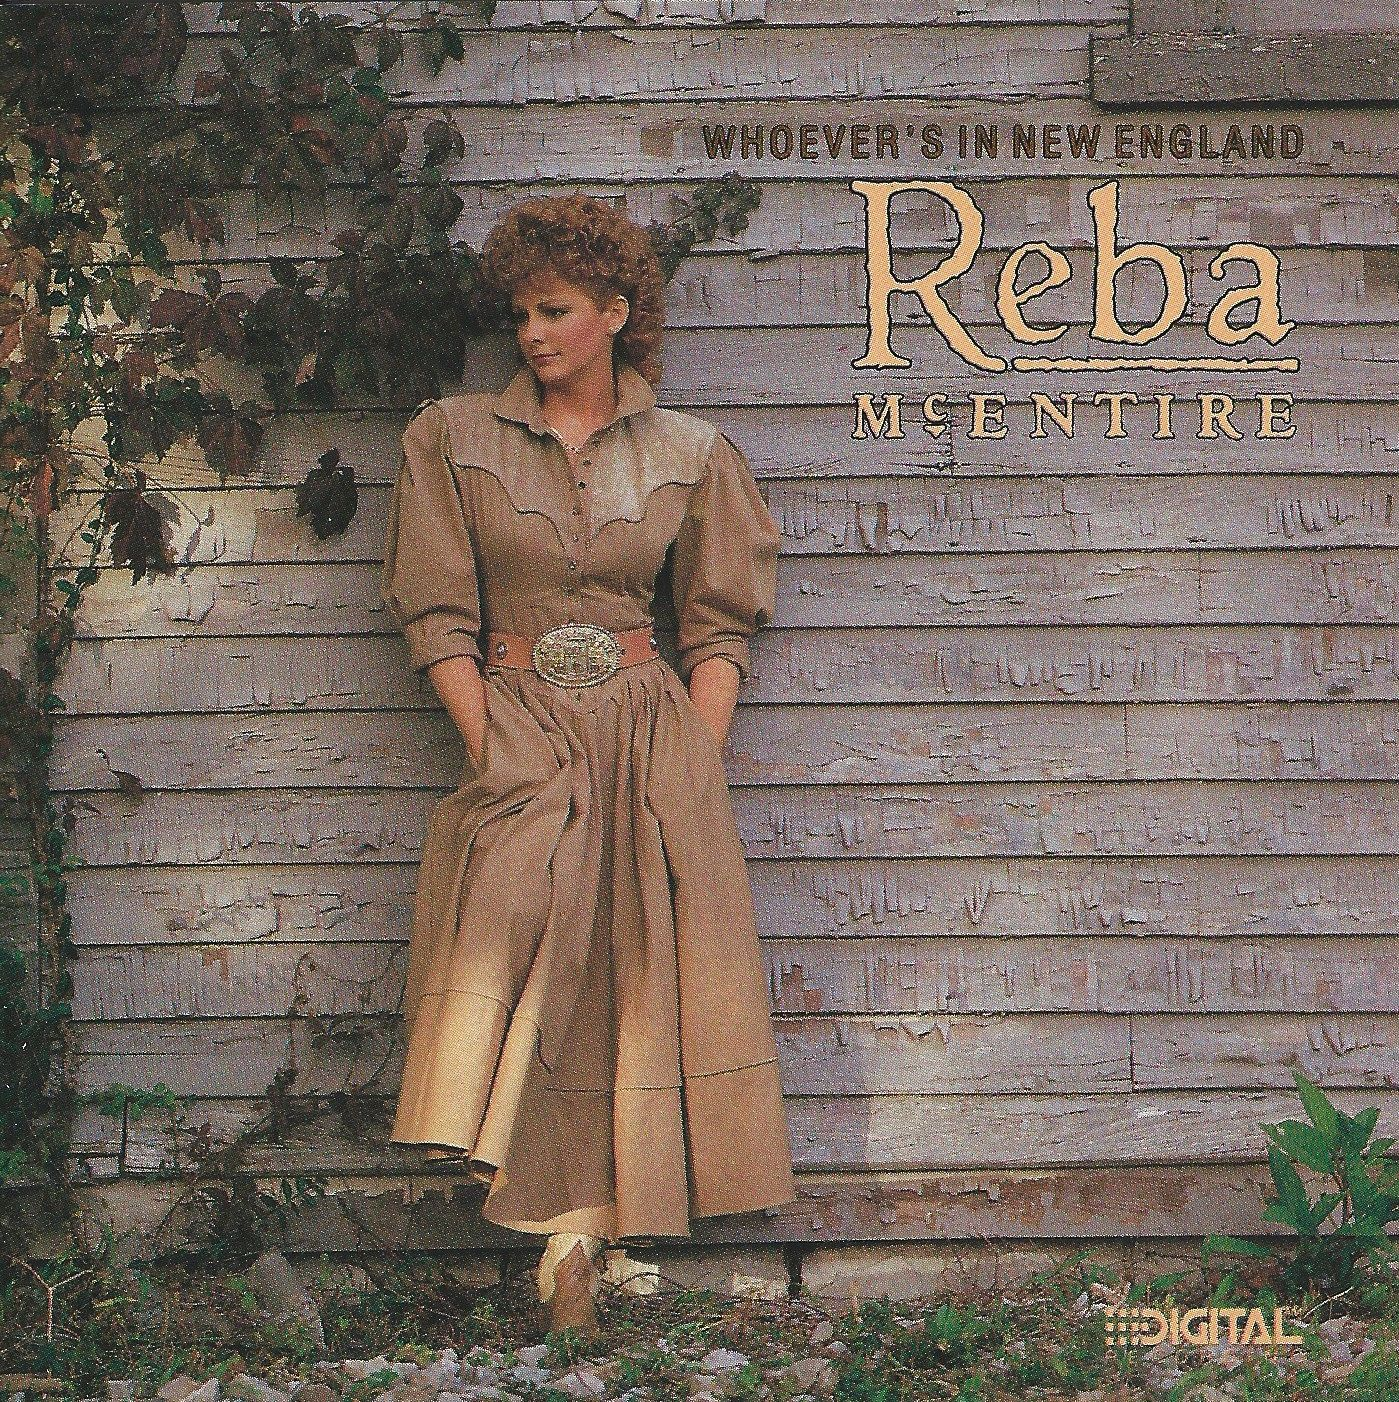 Reba McEntire - Whoever's In New England Album Cover